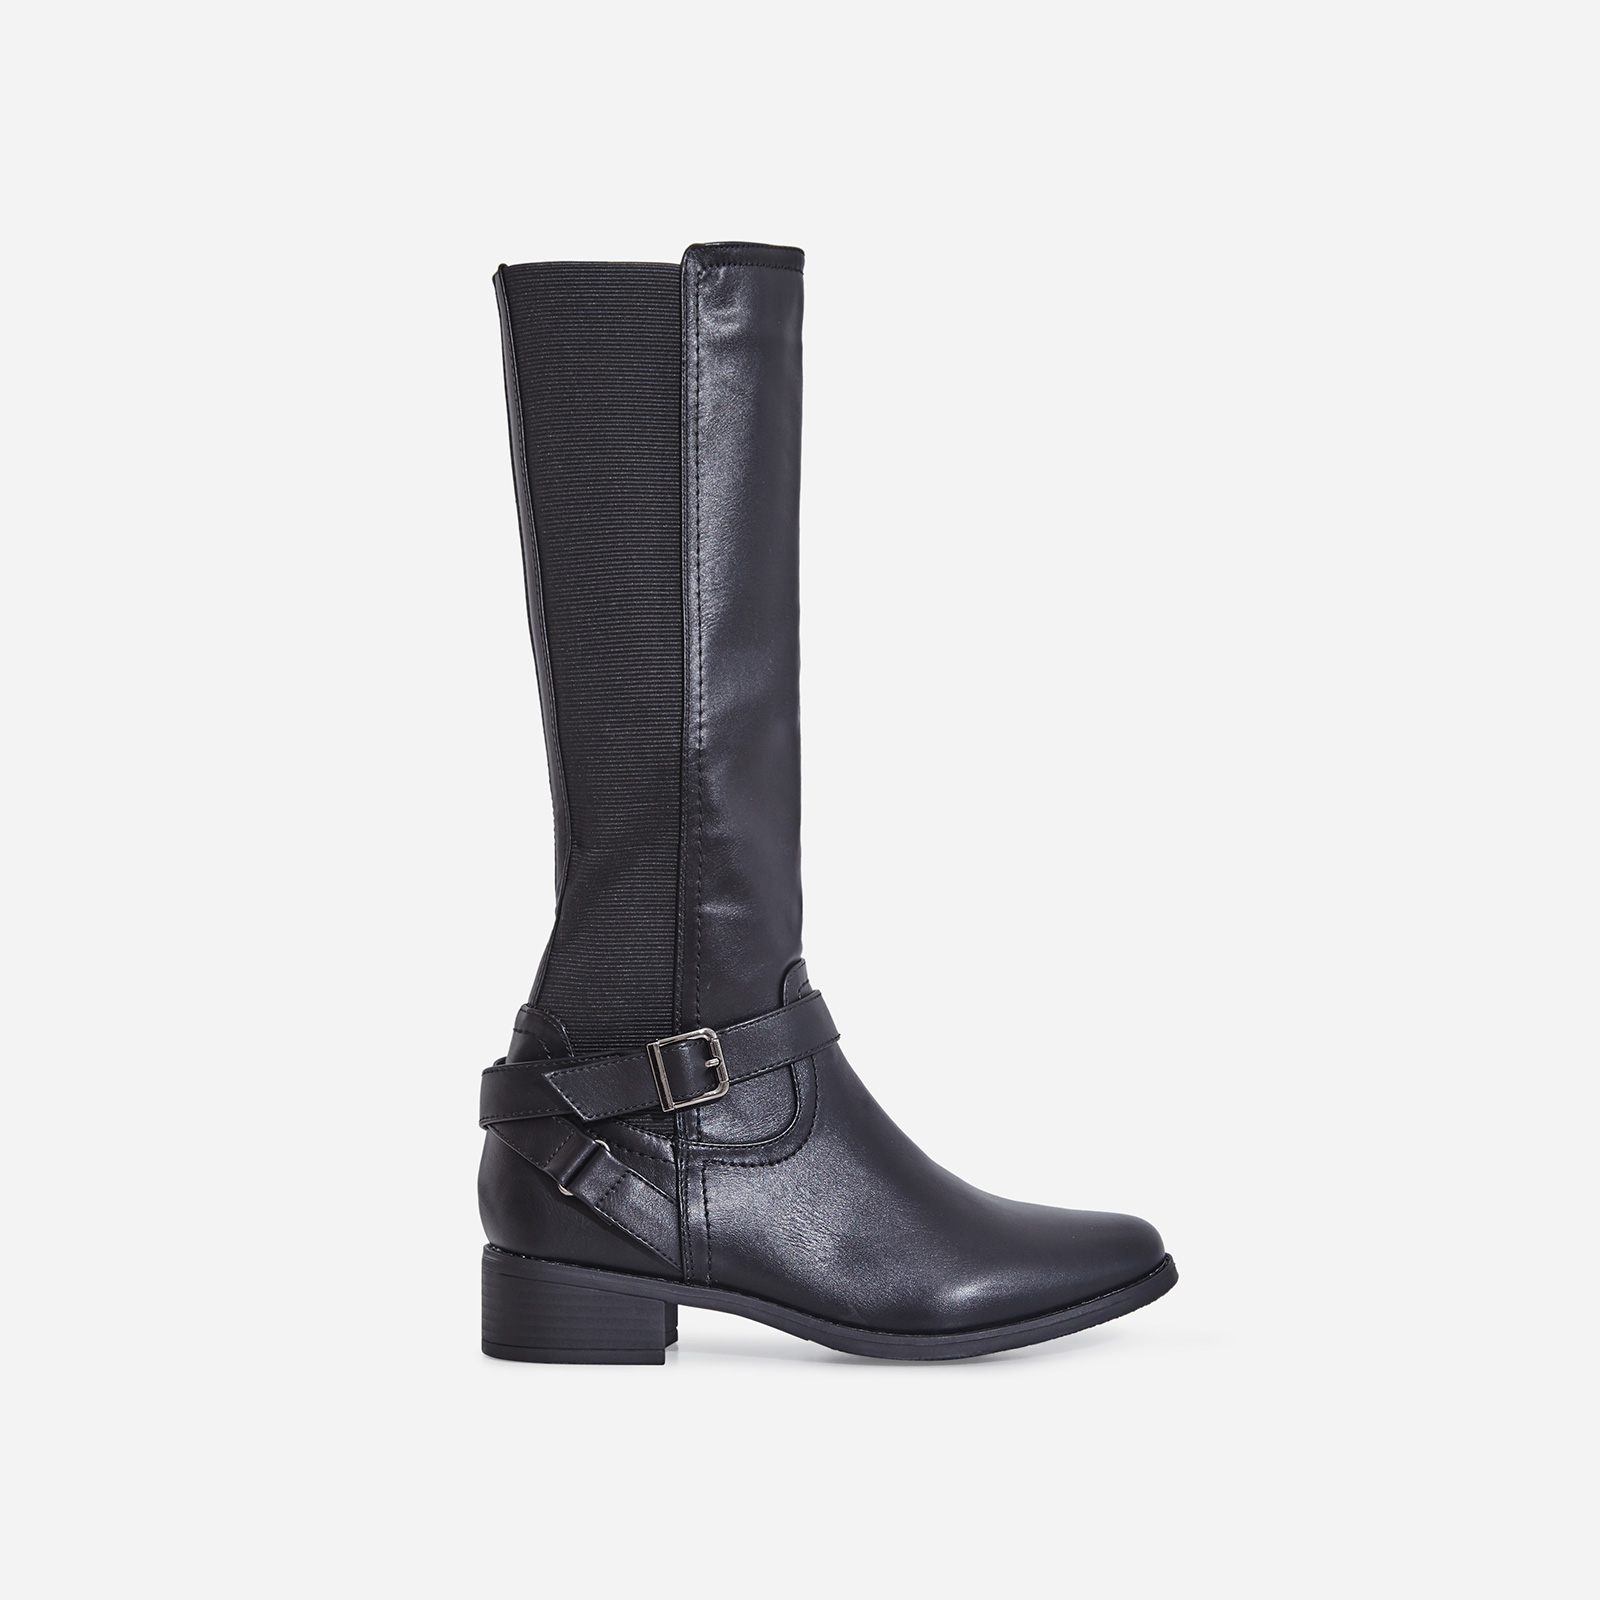 Rosie Buckle Detail Ankle Boot In Black Faux Leather